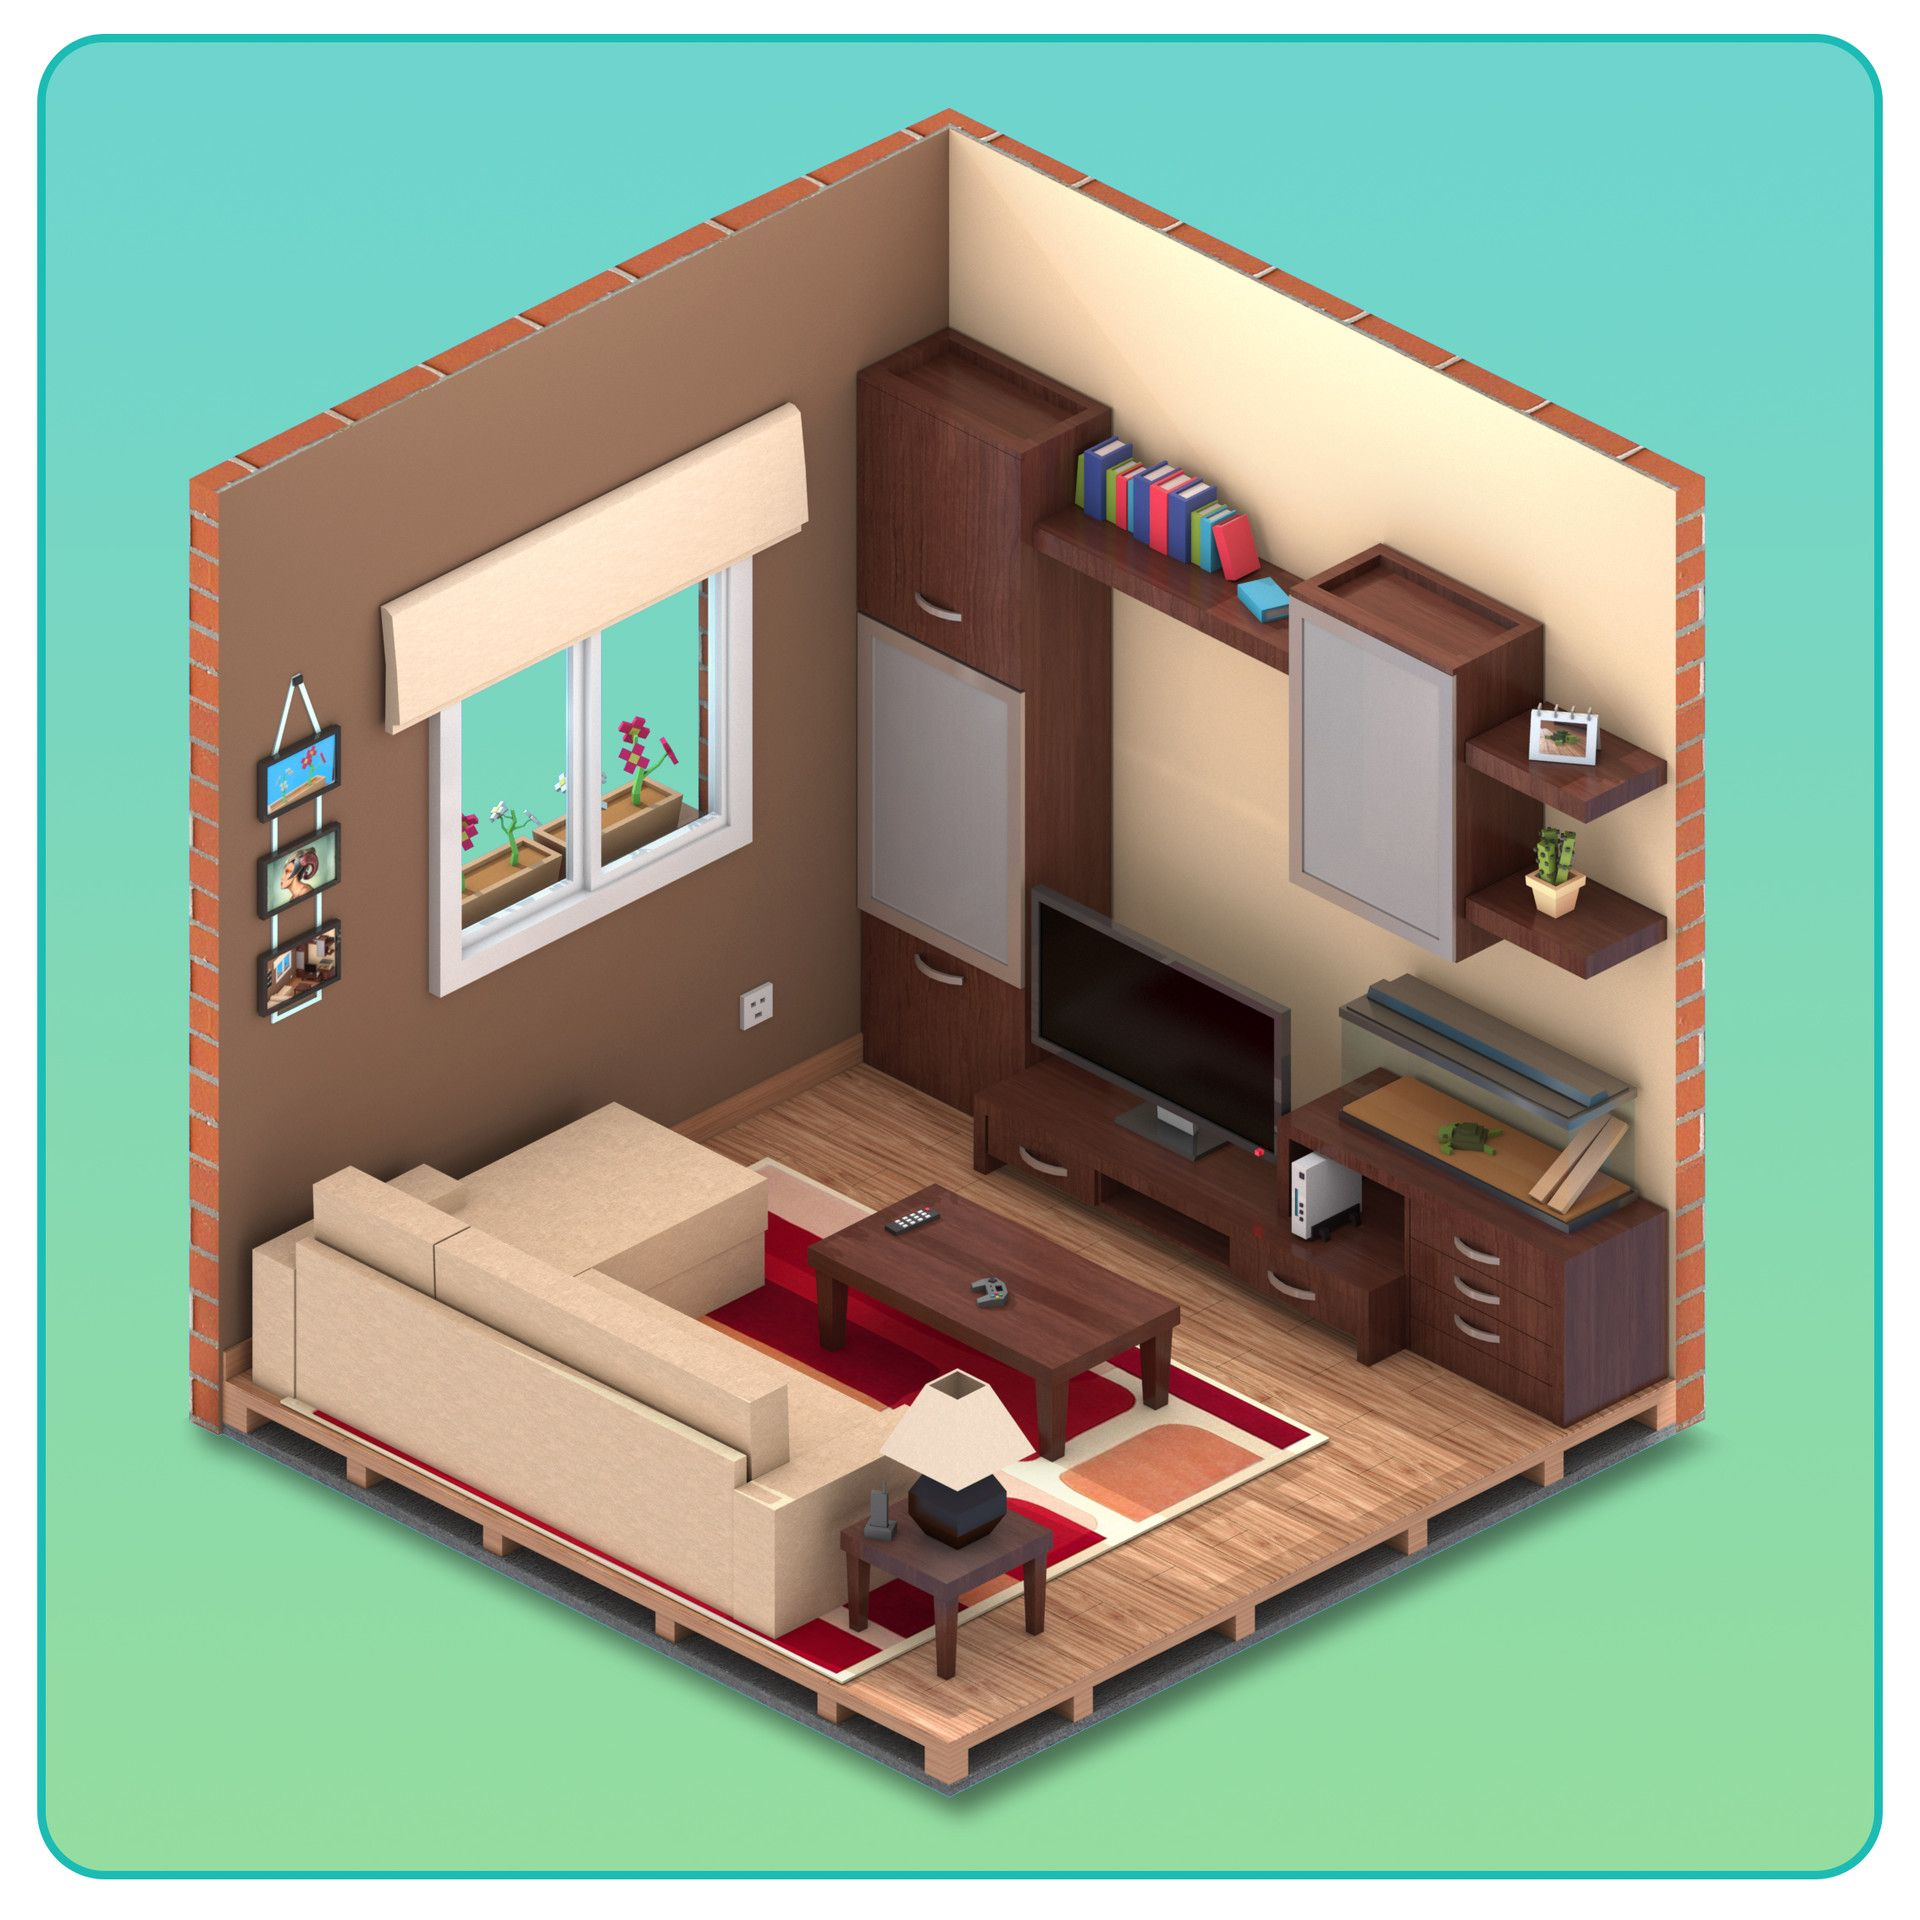 3d Room Layout Isometric Living Room For Game Maked In 3dmax And